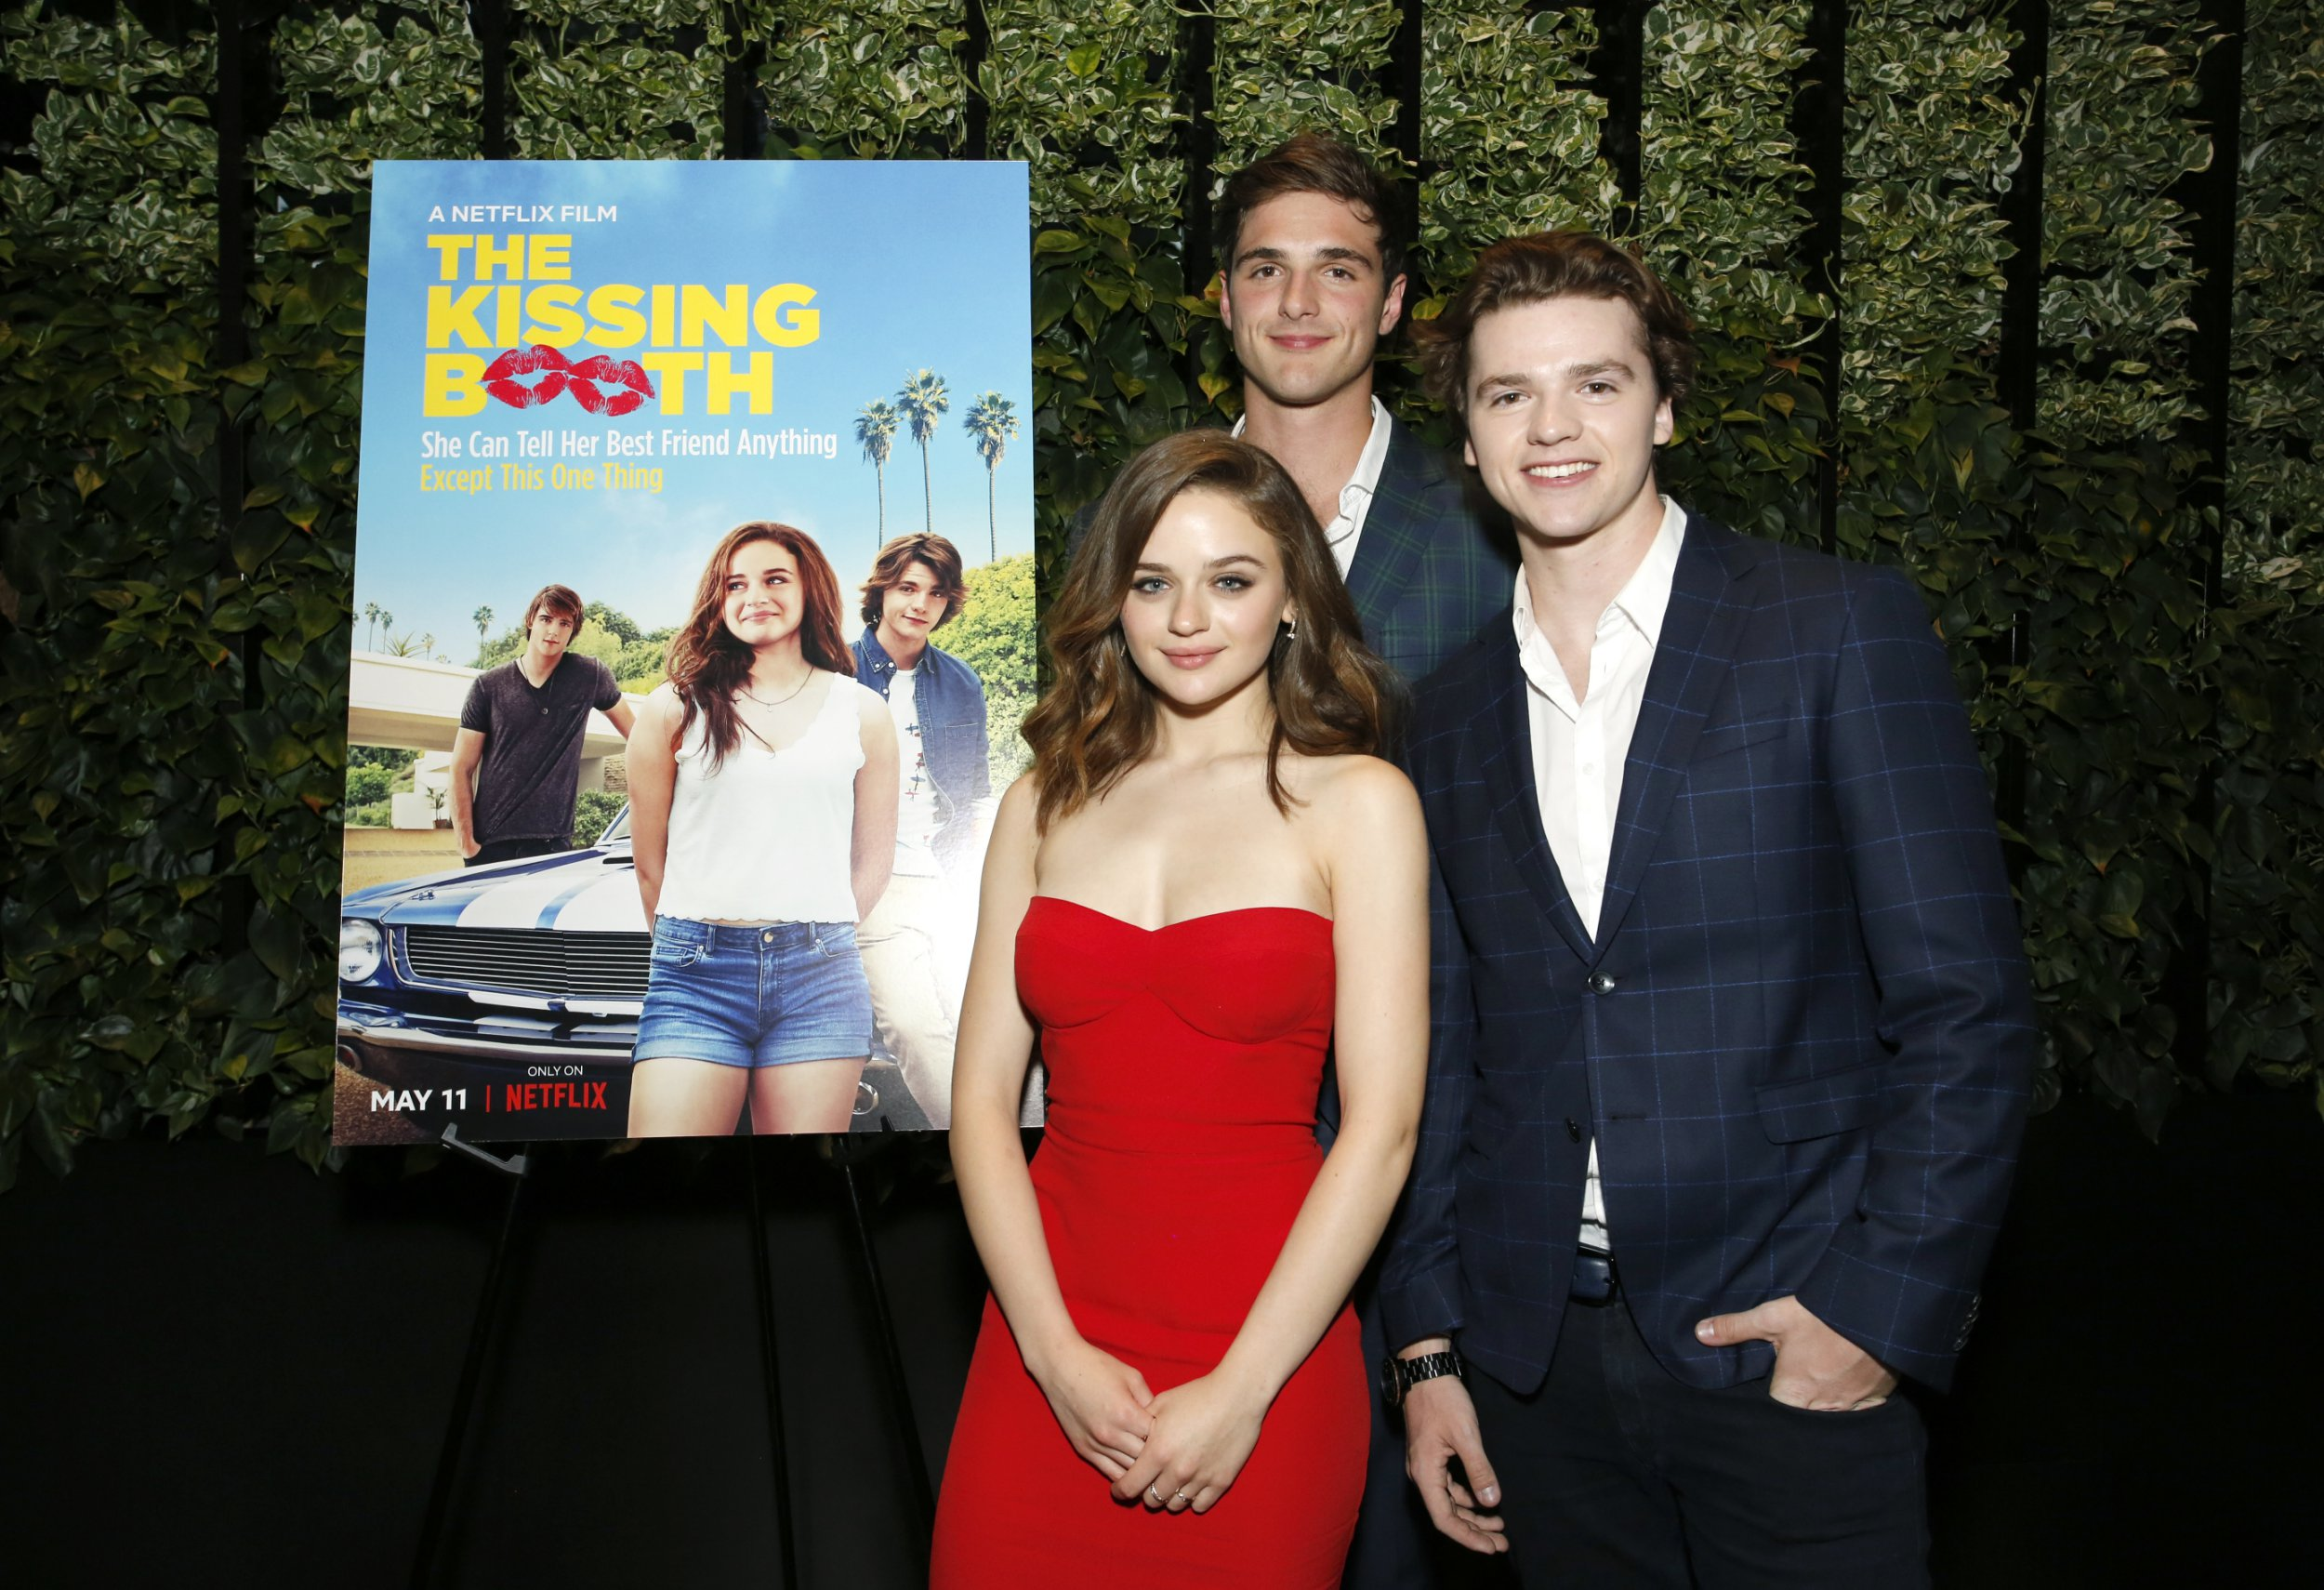 LOS ANGELES, CA - MAY 10: Jacob Elordi, Joey King and Joel Courtney attend a screening of 'The Kissing Booth' at NETFLIX on May 10, 2018 in Los Angeles, California. (Photo by Rachel Murray/Getty Images for Netflix)